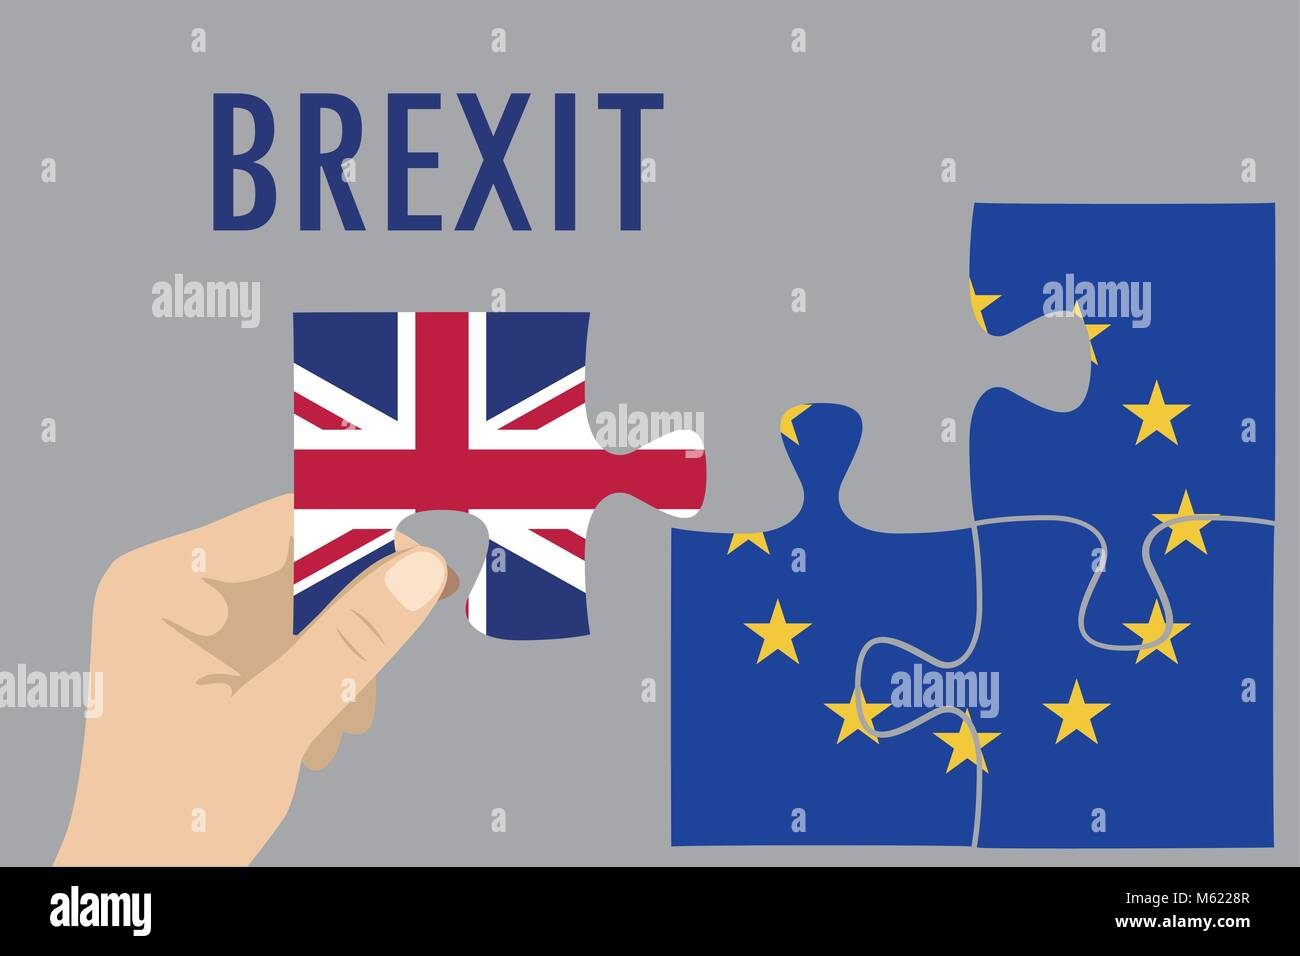 Brexit puzzle concept. British and European Union flag , referendum. Vector illustration background. Stock Vector